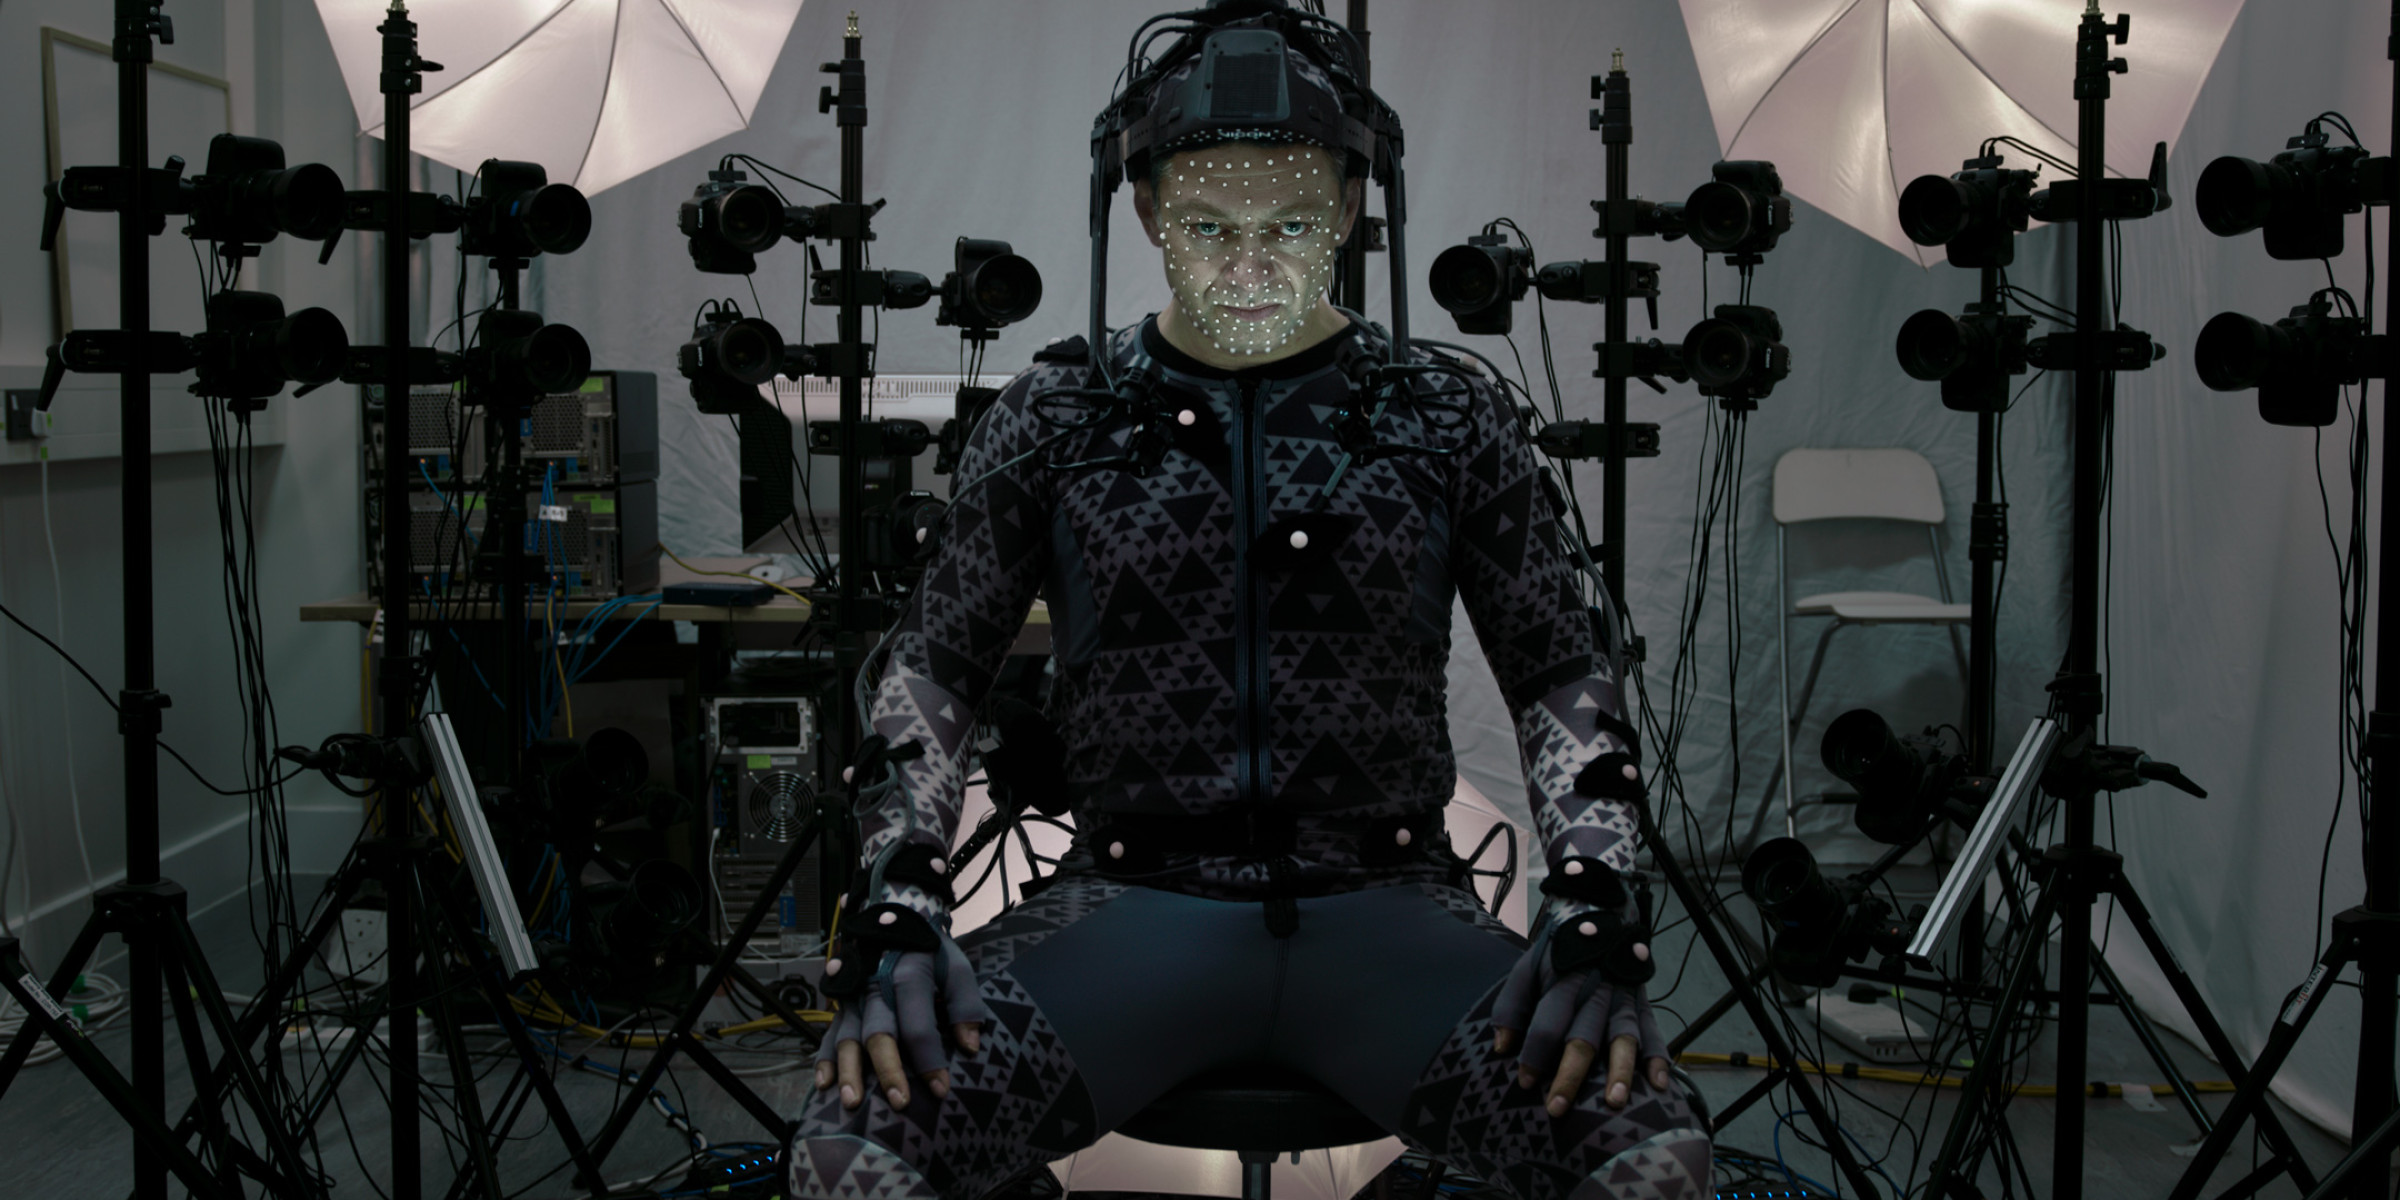 Andy Serkis as Supreme Leader Snoke in Star Wars: The Force Awakens